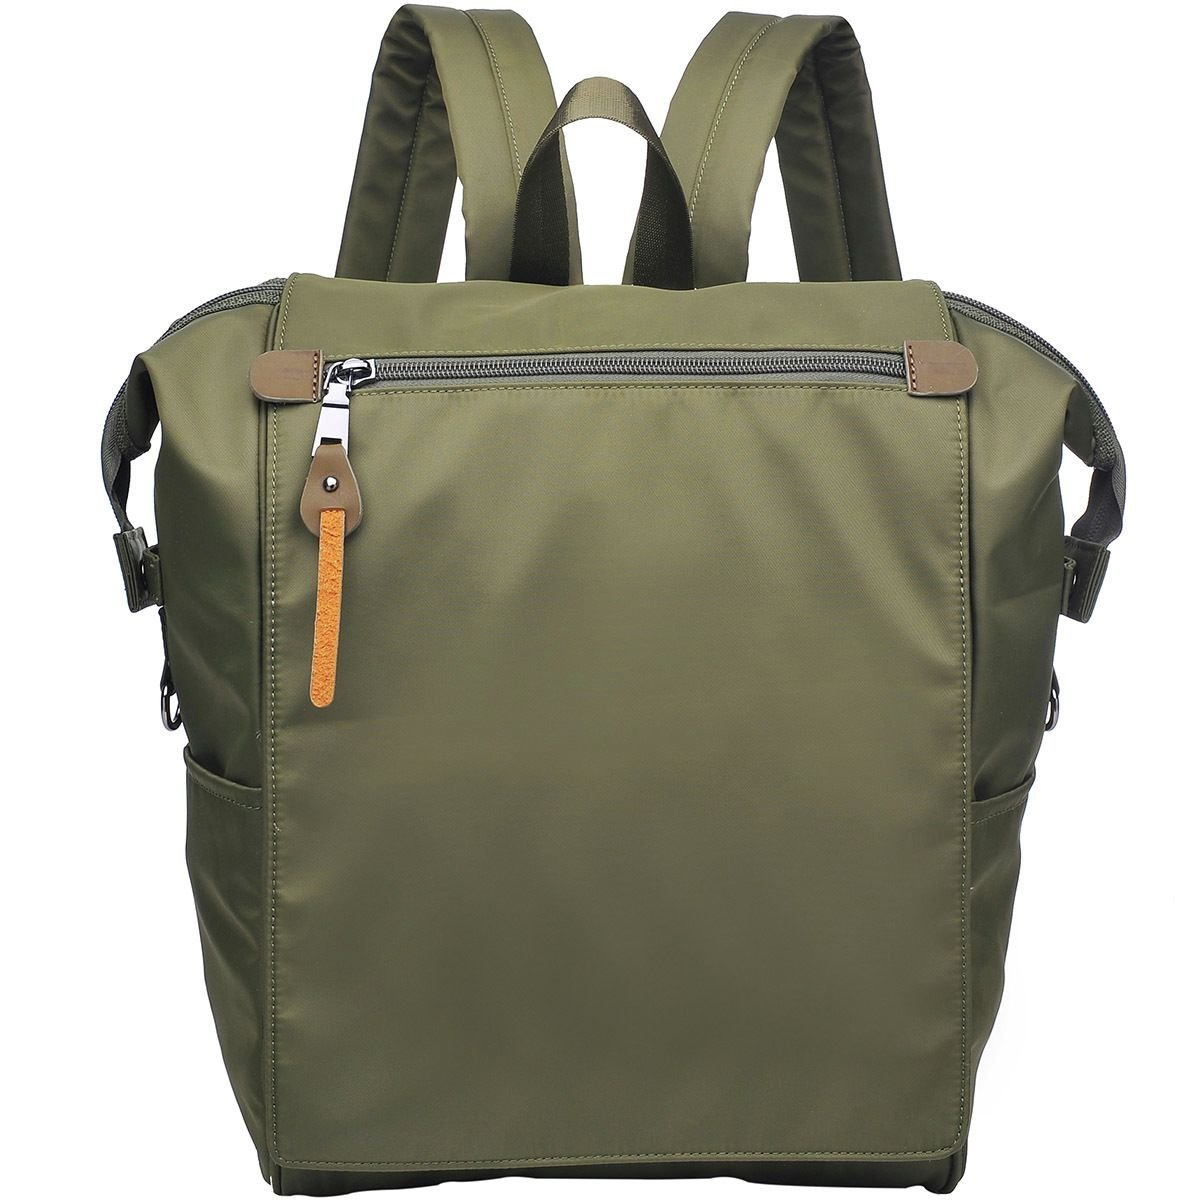 Urban Expressions Top Zip Yoga Backpack - Women's Olive/Olive, One Size